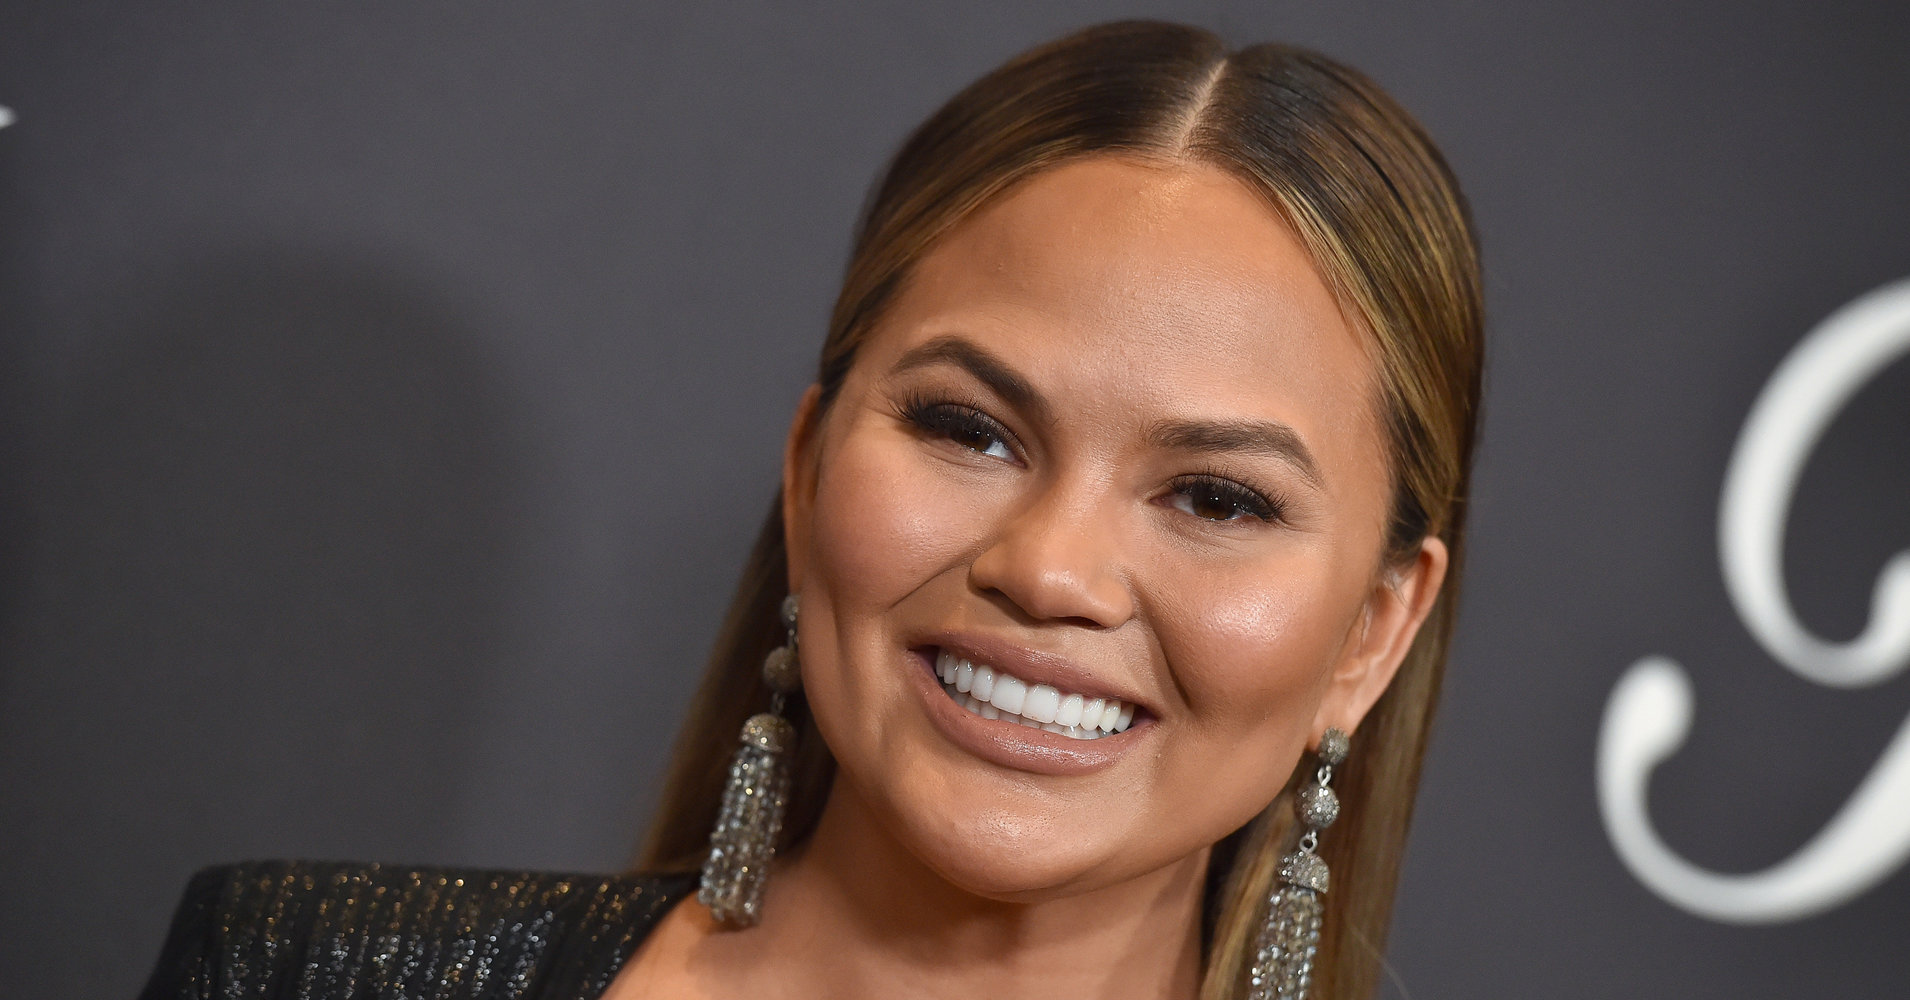 Chrissy Teigen Celebrates Getting Gray Hair With The Perfect Tweet